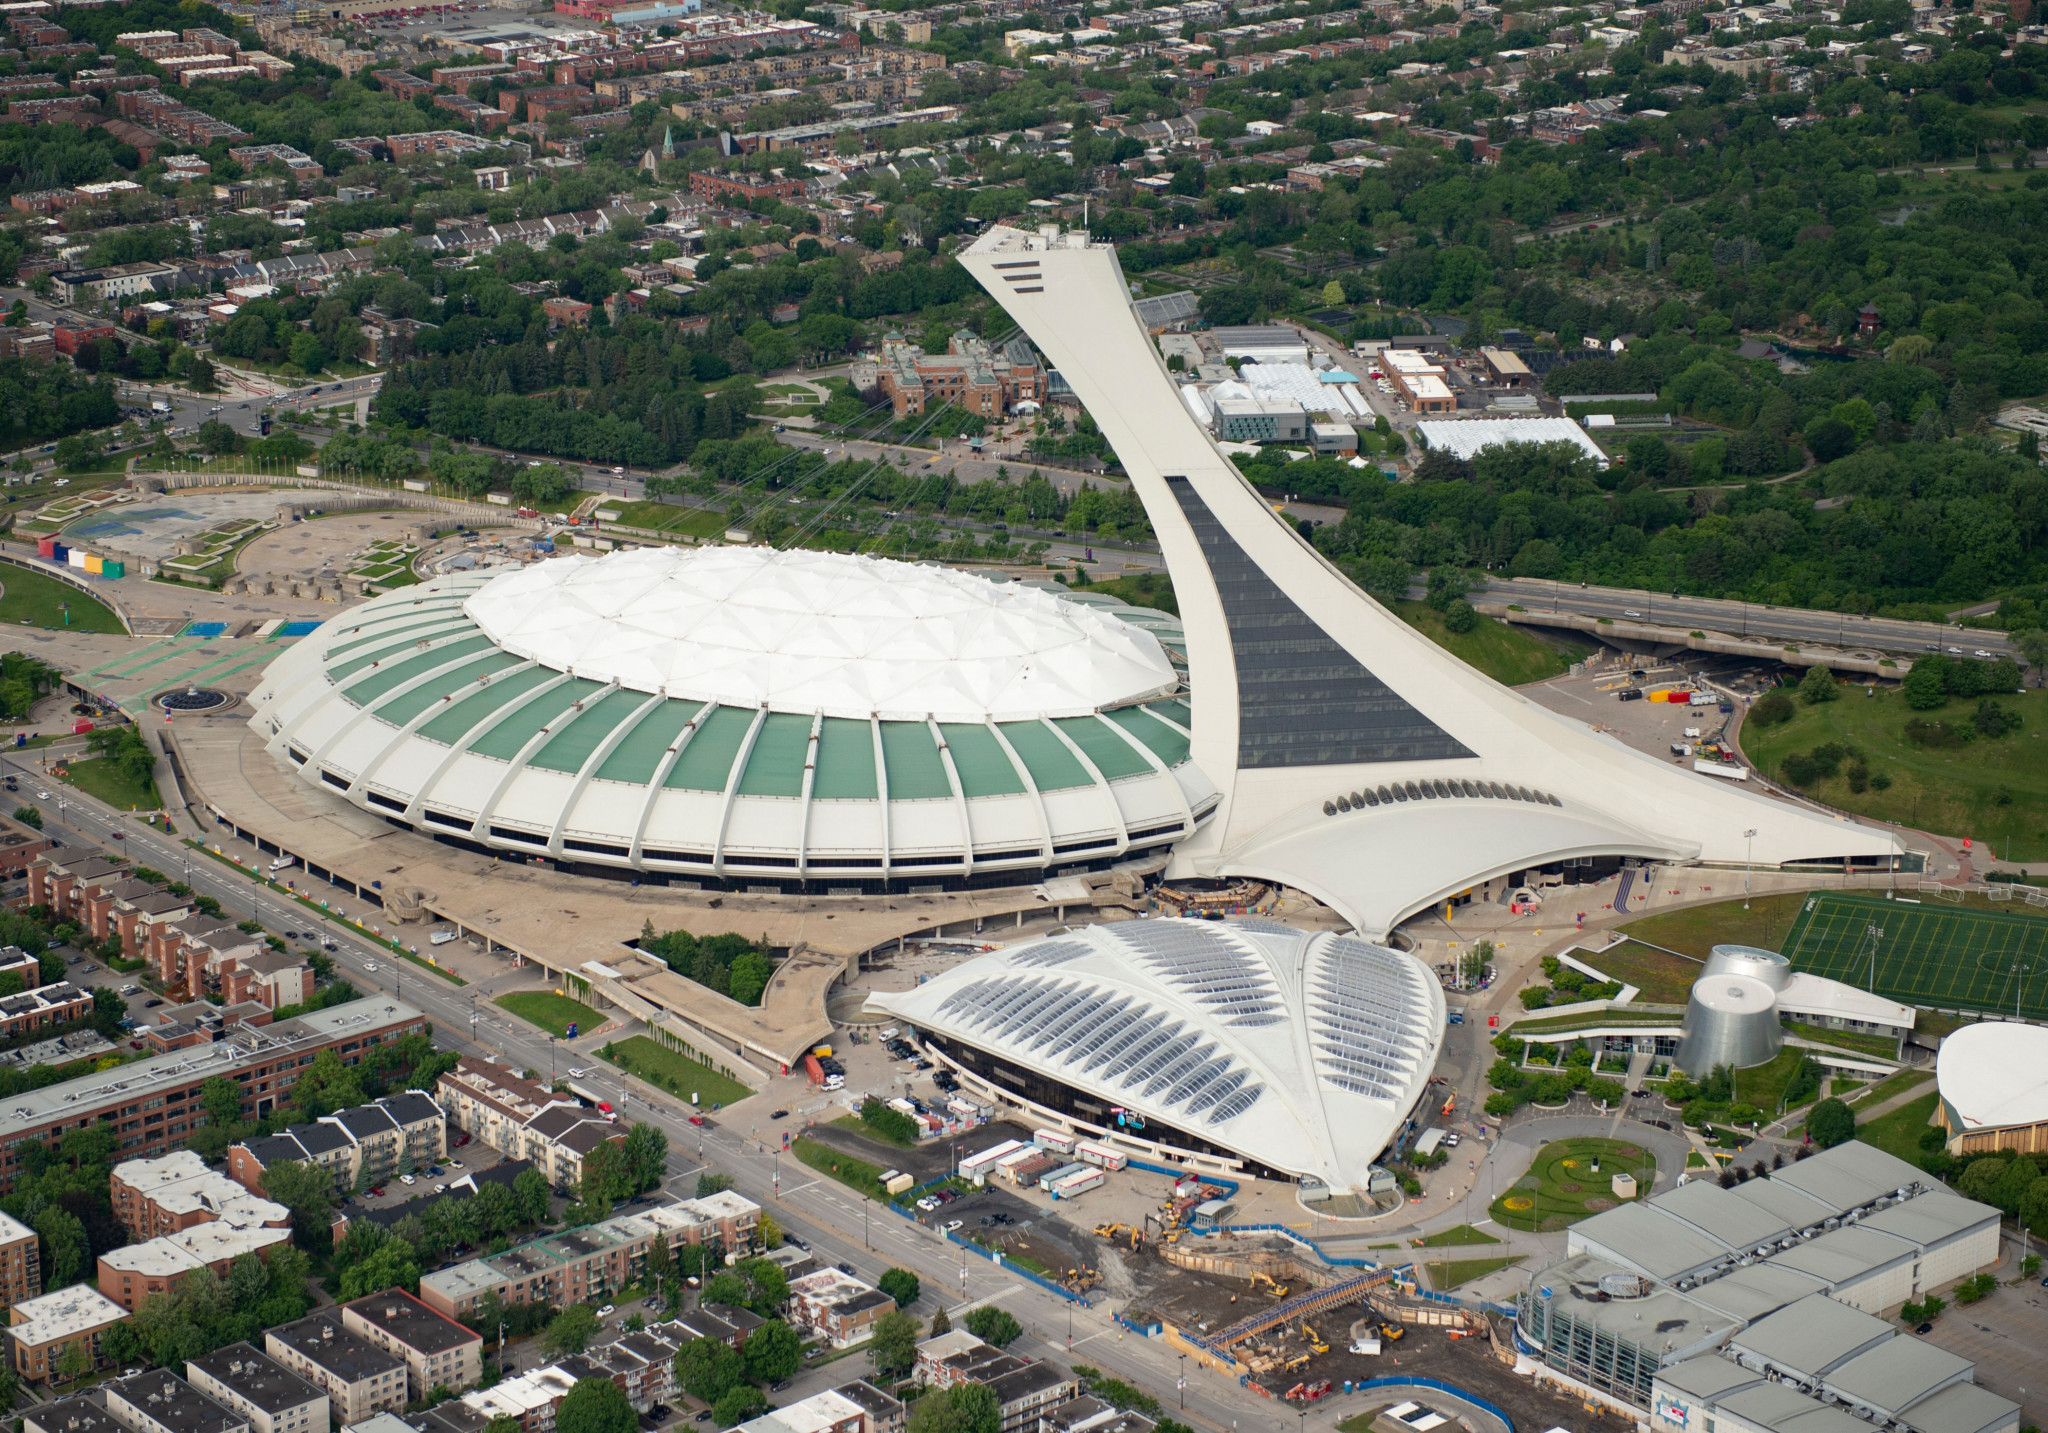 The Olympic Stadium in Montreal will become a mass vaccination centre ©Getty Images